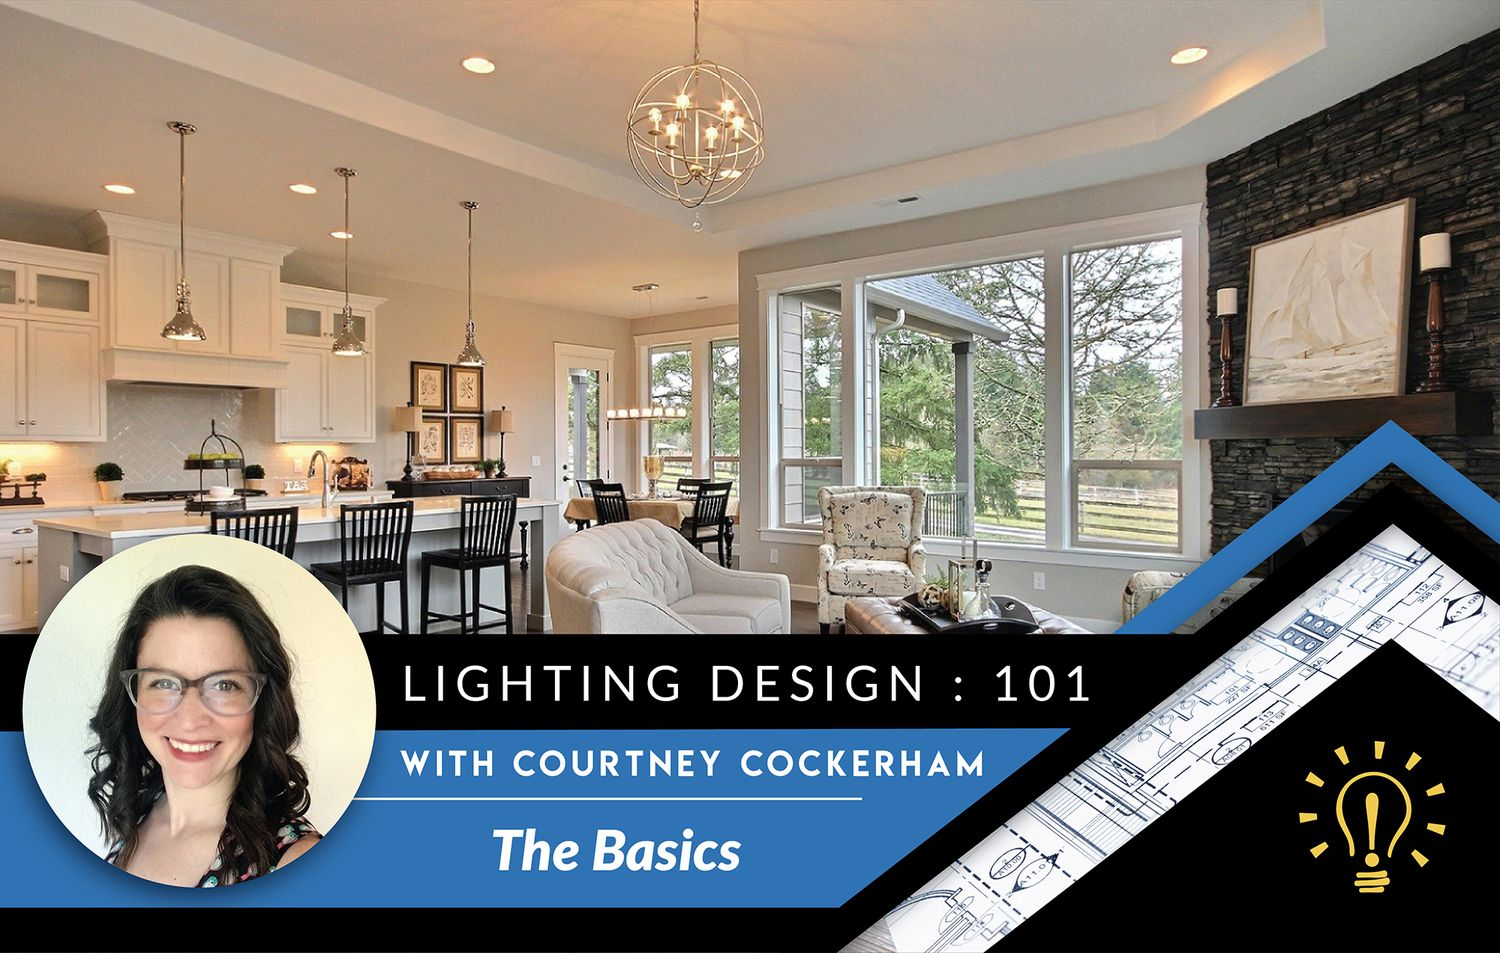 Blog Post-Lighting Design 101 The Basics with Courtney Cockerham